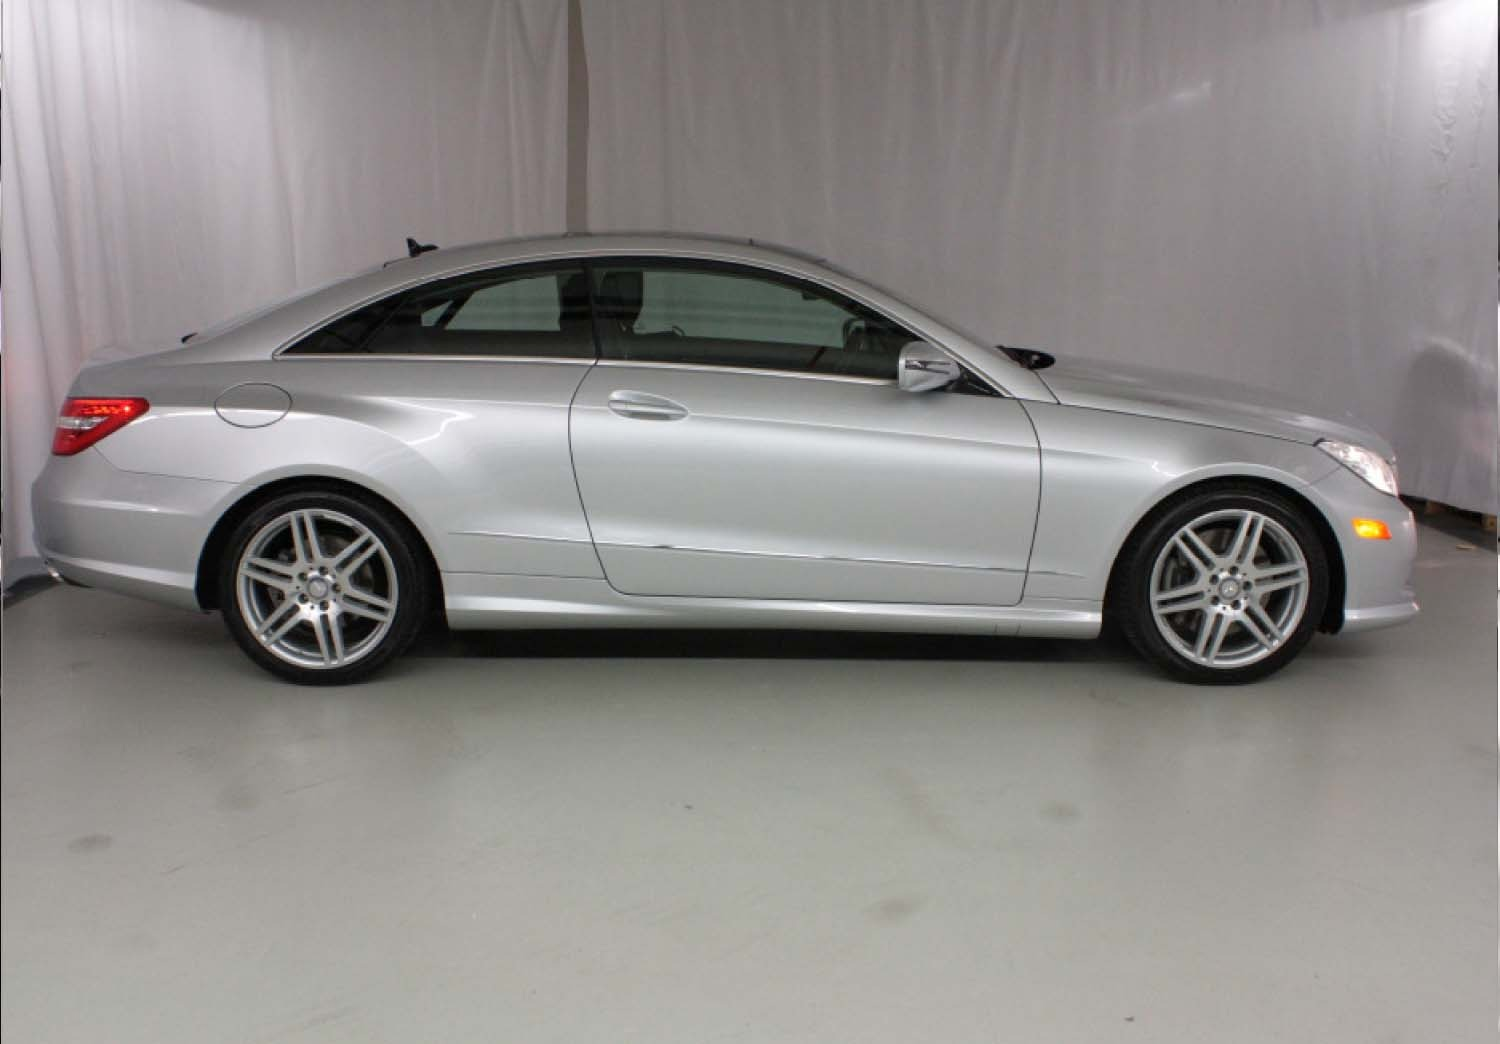 2010 mercedes benz e550 stock 2010mercedes for sale near for Mercedes benz of greenwich used cars